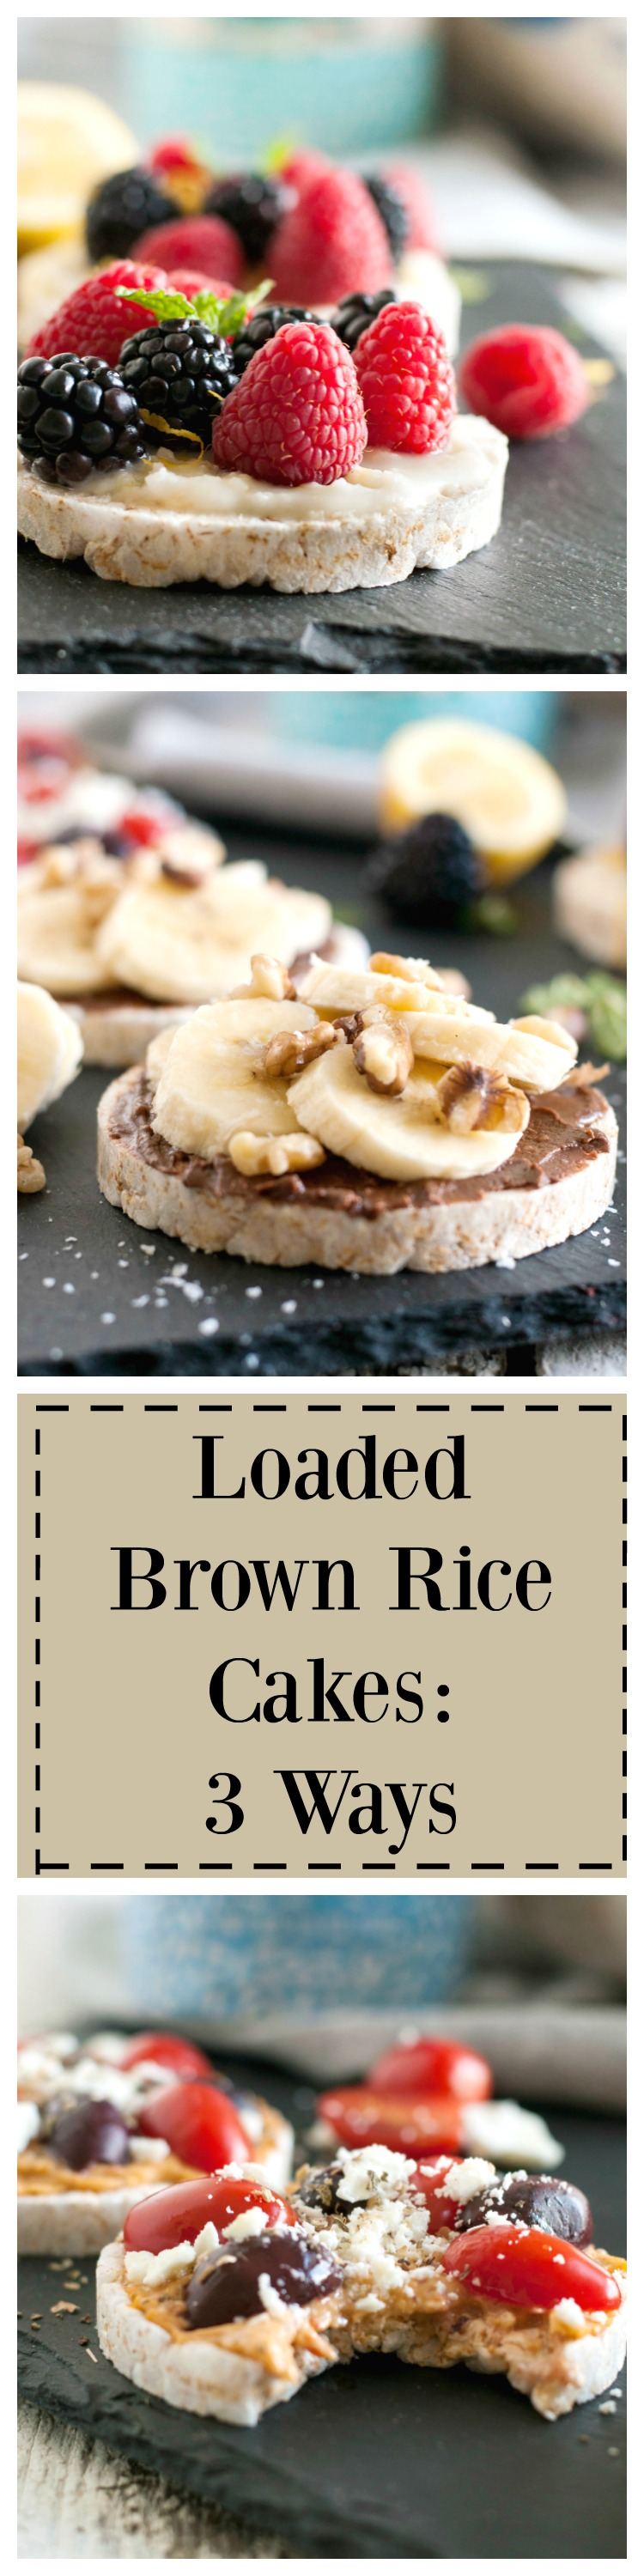 10+ Brown rice cakes healthy ideas